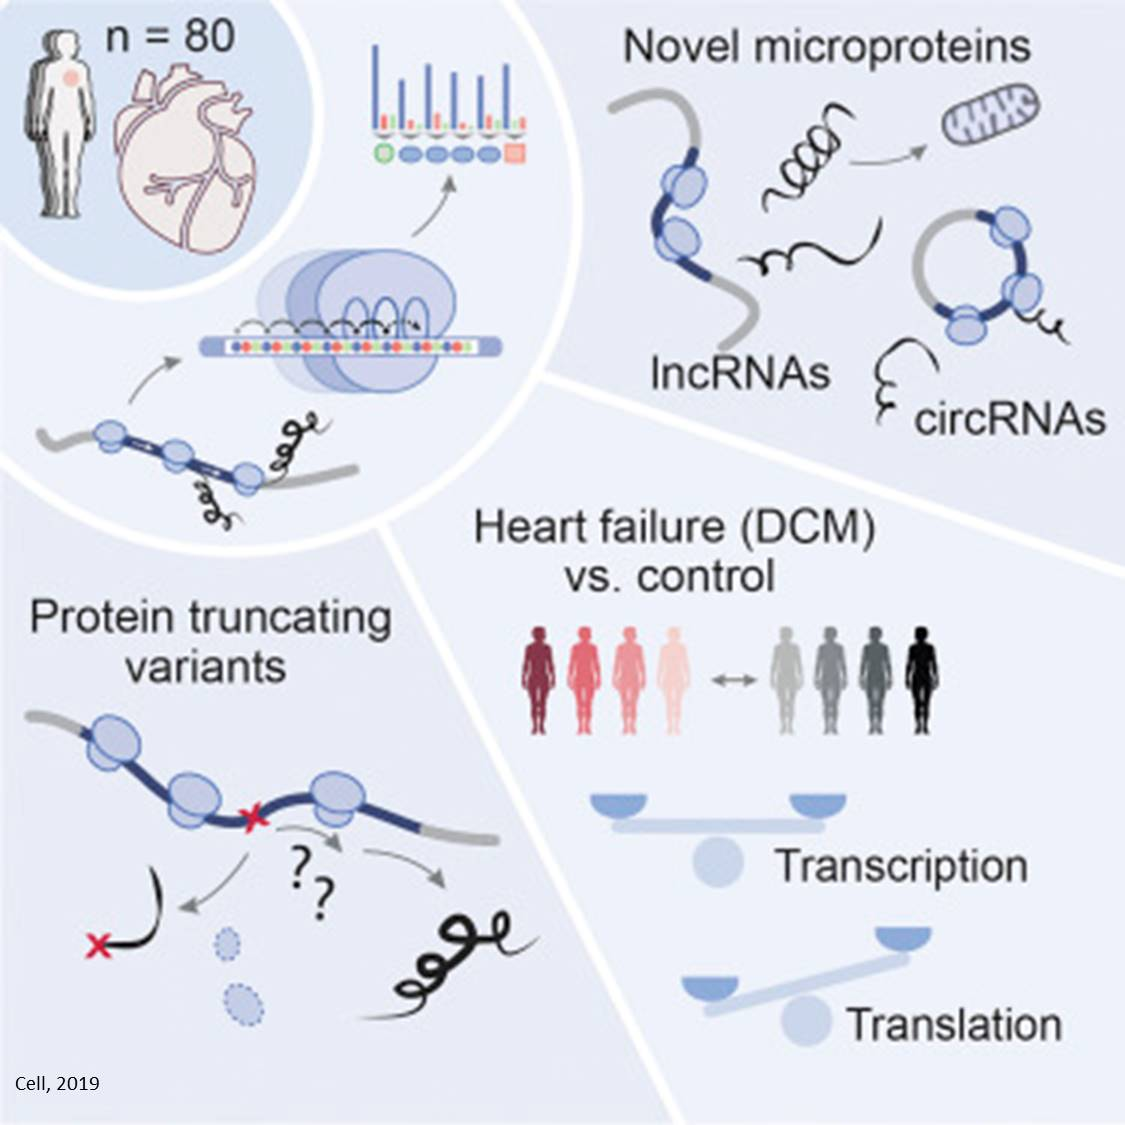 Microproteins from ncRNAs and circRNAs produced in human heart